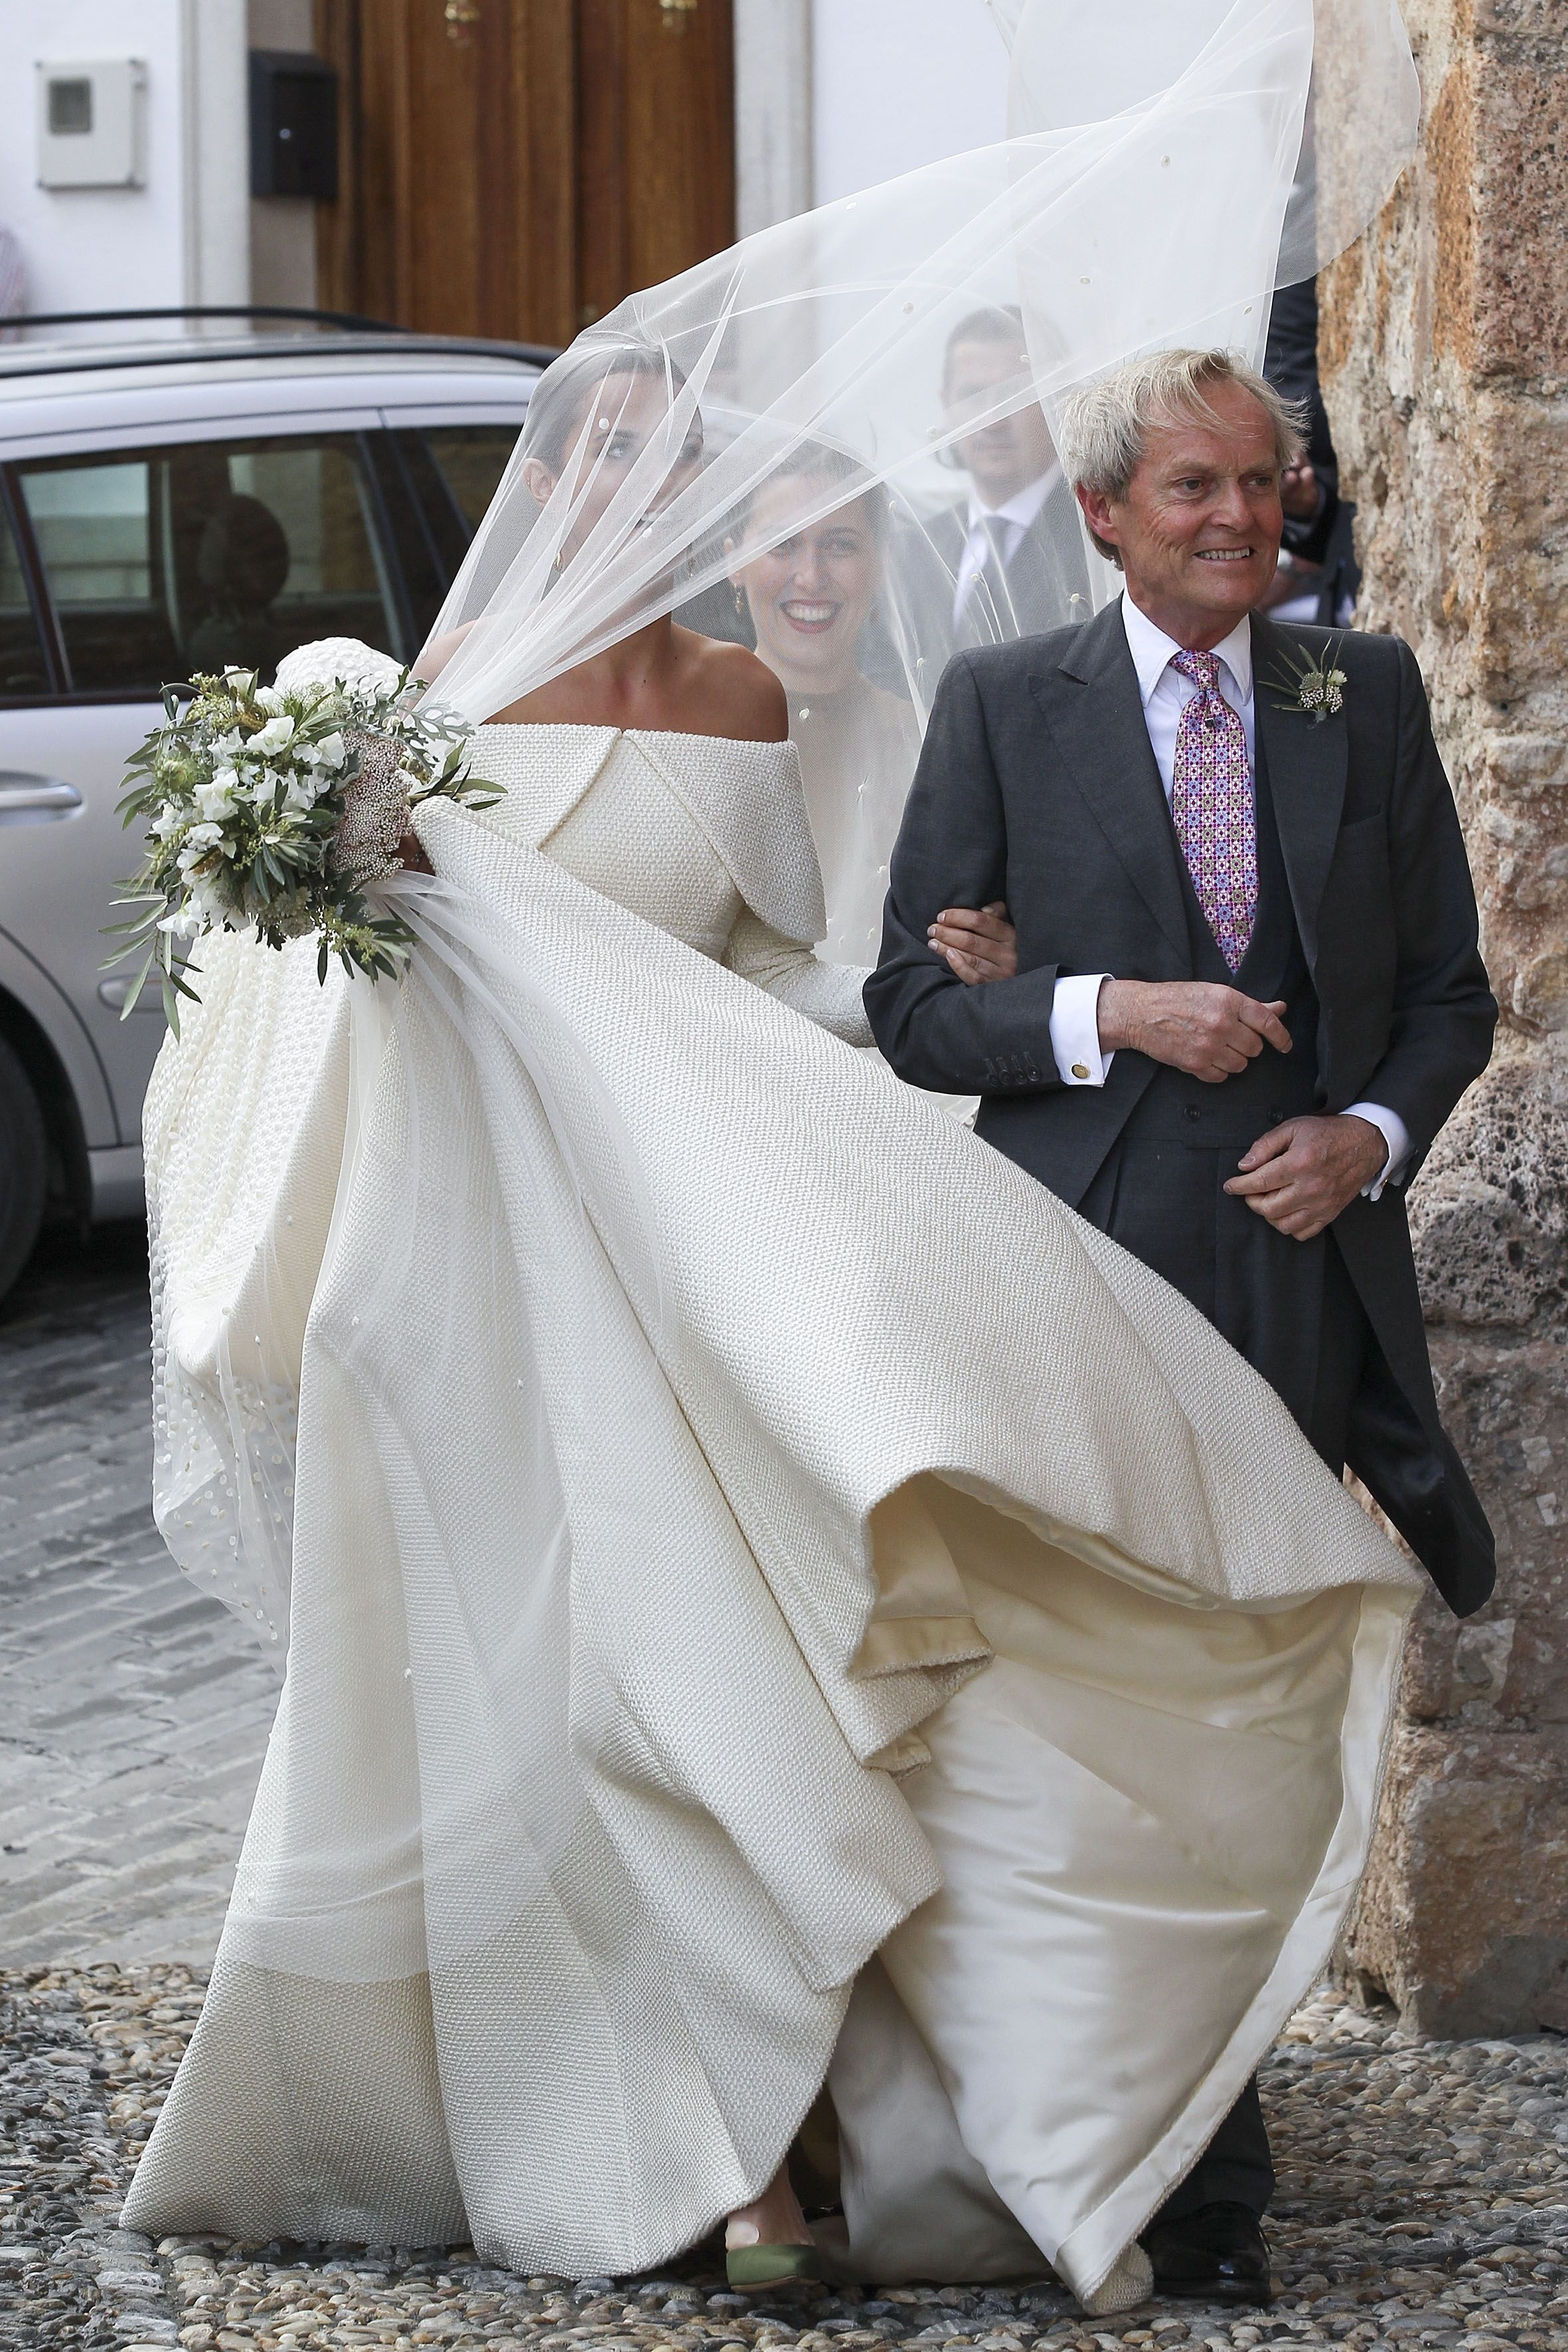 20 Massive Royal Wedding Fails You Never Knew About